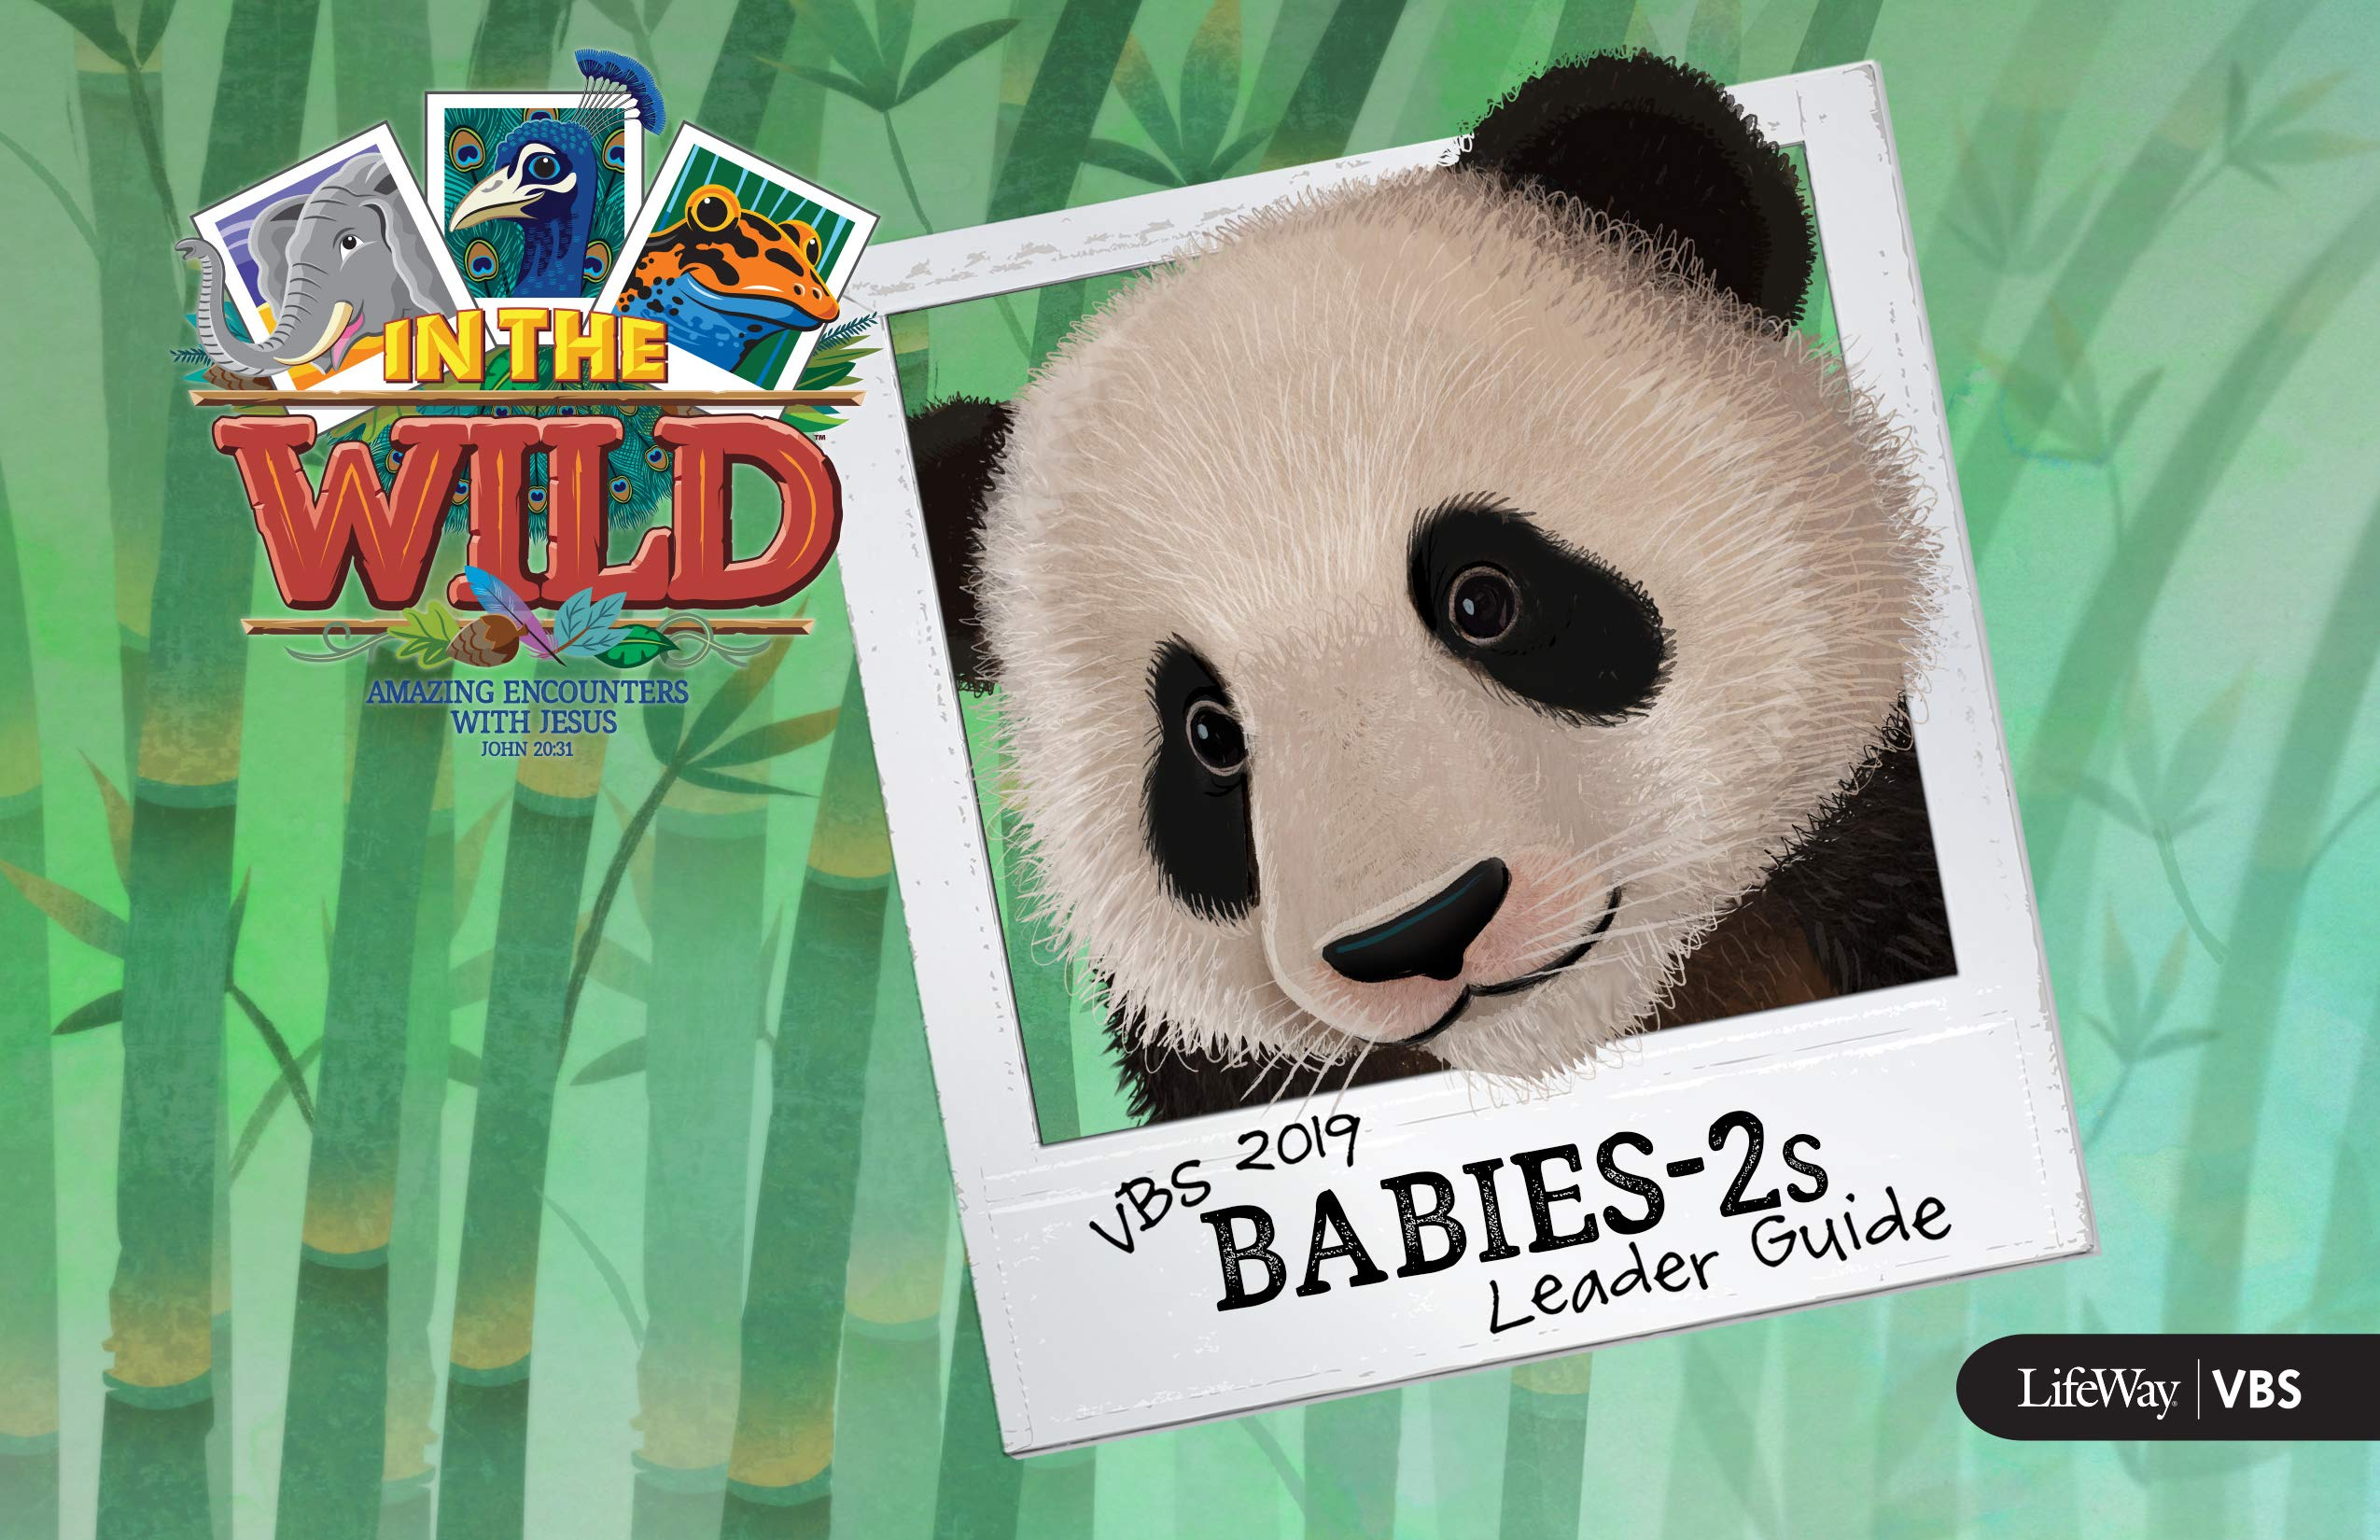 VBS 2019 Babies-2S Leader Guide: LifeWay Kids: 9781535909952